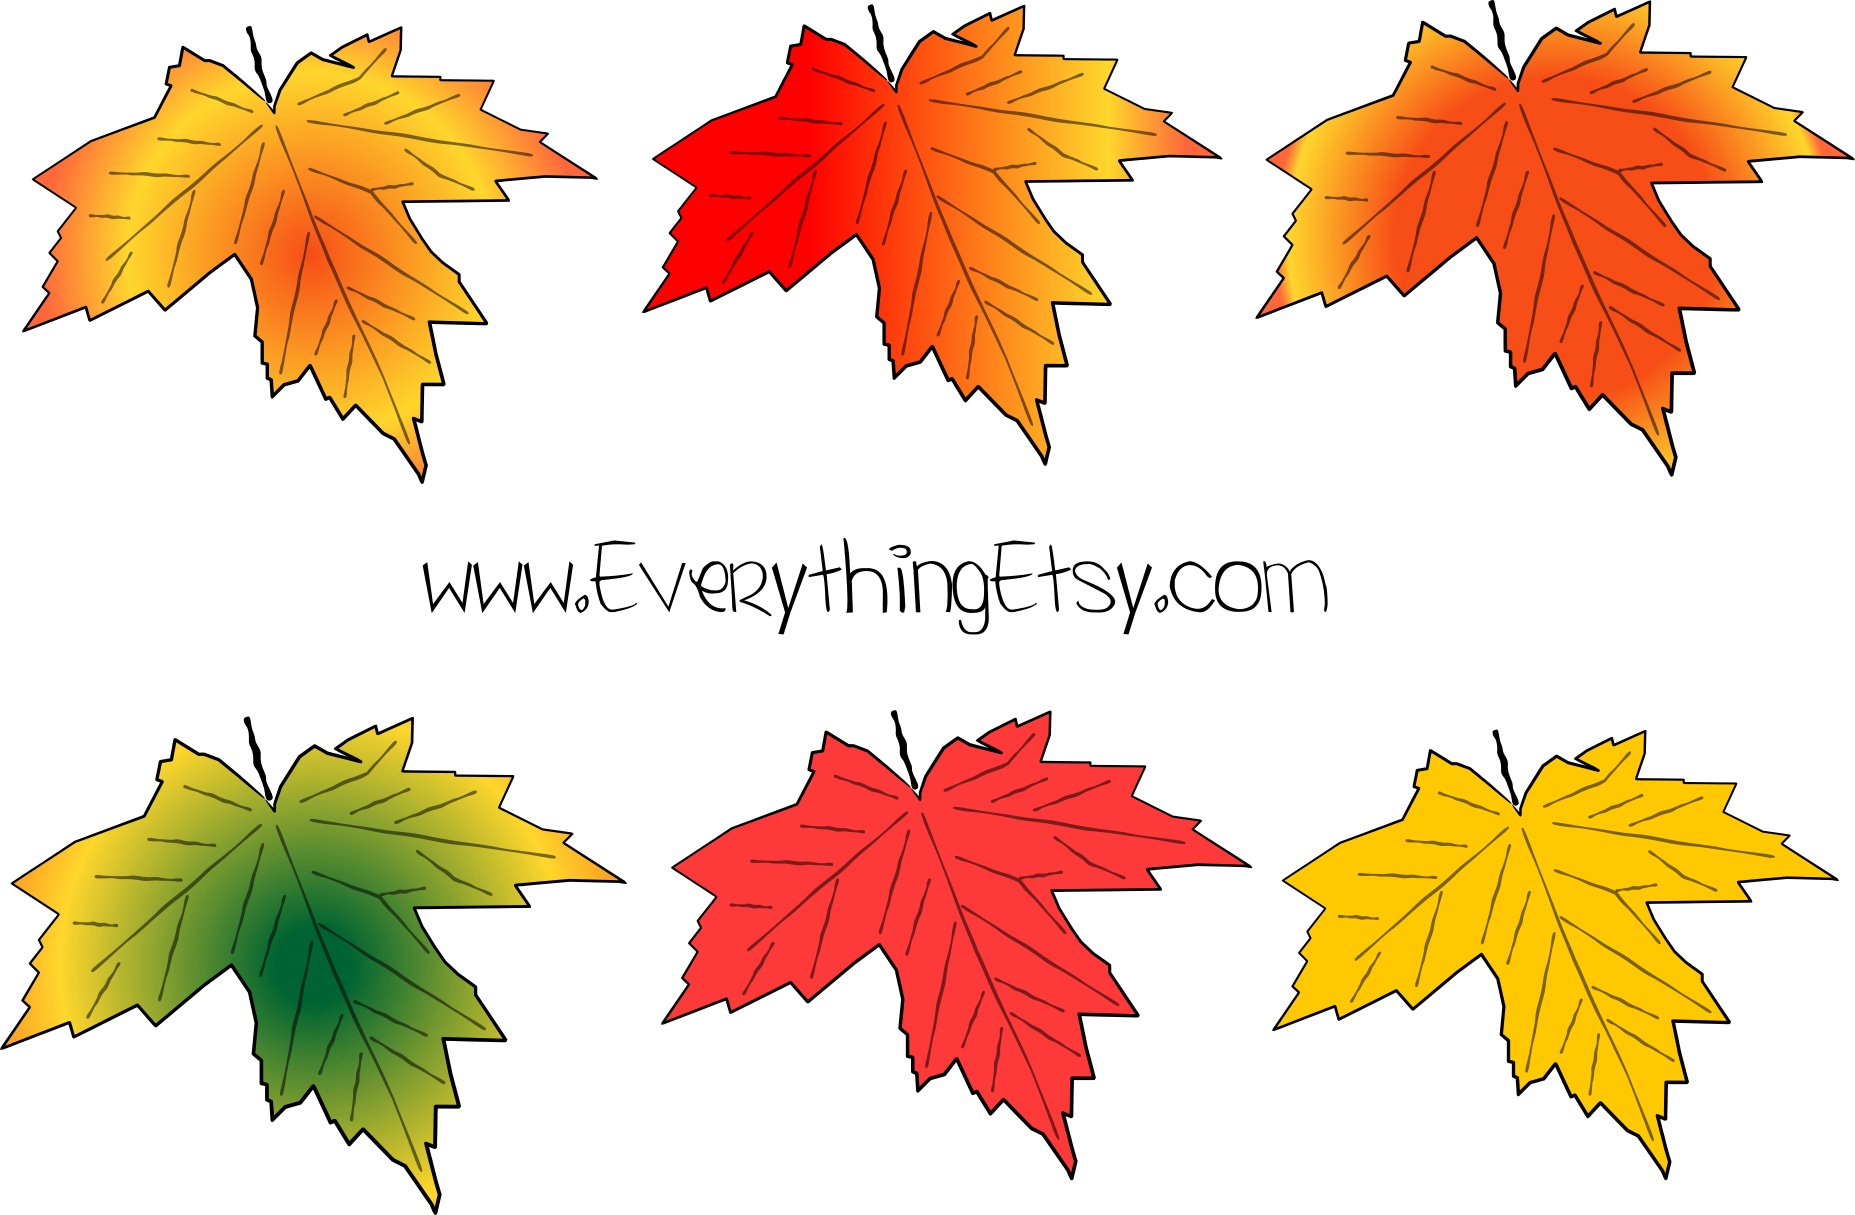 picture about Autumn Leaves Printable called Cost-free image: Small Autumn Leaves - Year, Outside, Minimal